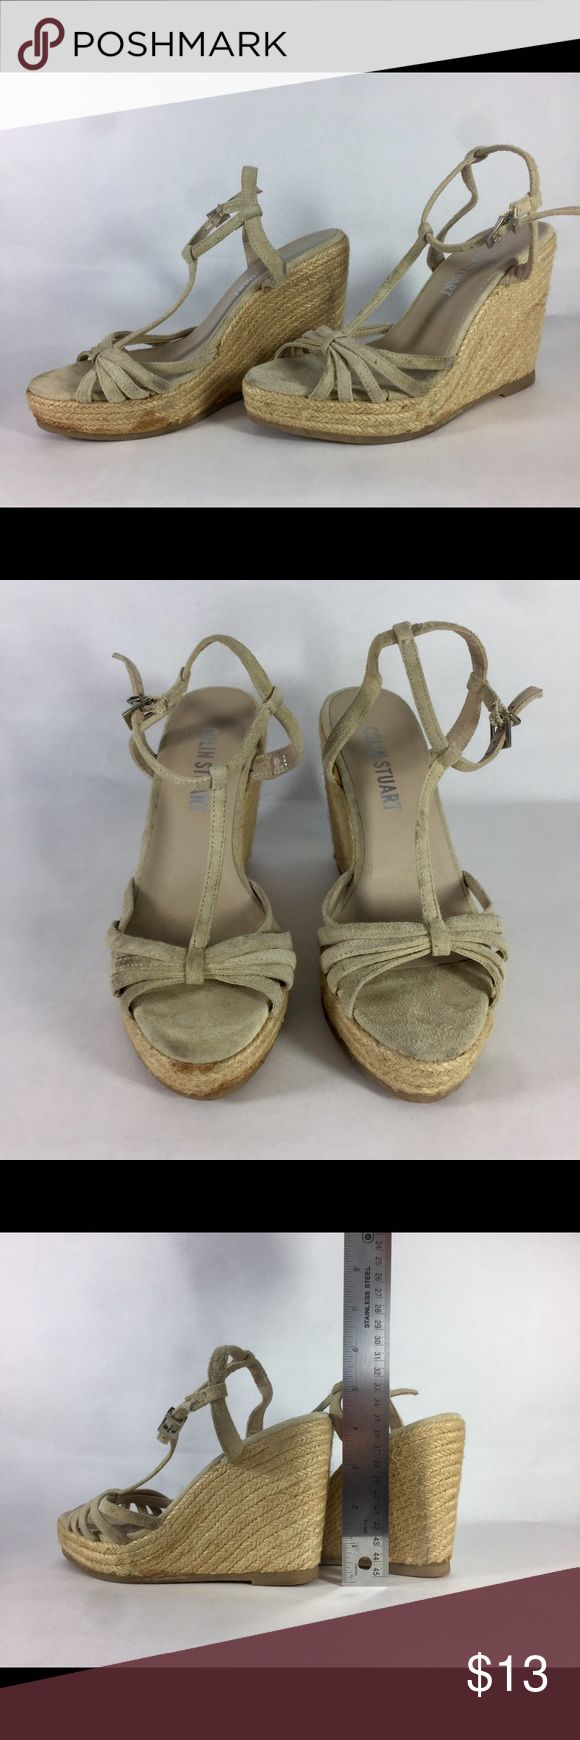 Colin Stuart Espadrille T-Strap Sandal 💃 Colin Stuart espadrille t-strap sandal 💃 Neutral tan, goes with everything. Sandal is used and stained 🥀 I can provide more images 📸 upon request. However, with a little soap 🛁and water 💦 I think you can bring them back to life 🌹 Check out how to clean espadrilles here: https://www.leaf.tv/articles/how-to-clean-espadrilles/ Colin Stuart Shoes Espadrilles